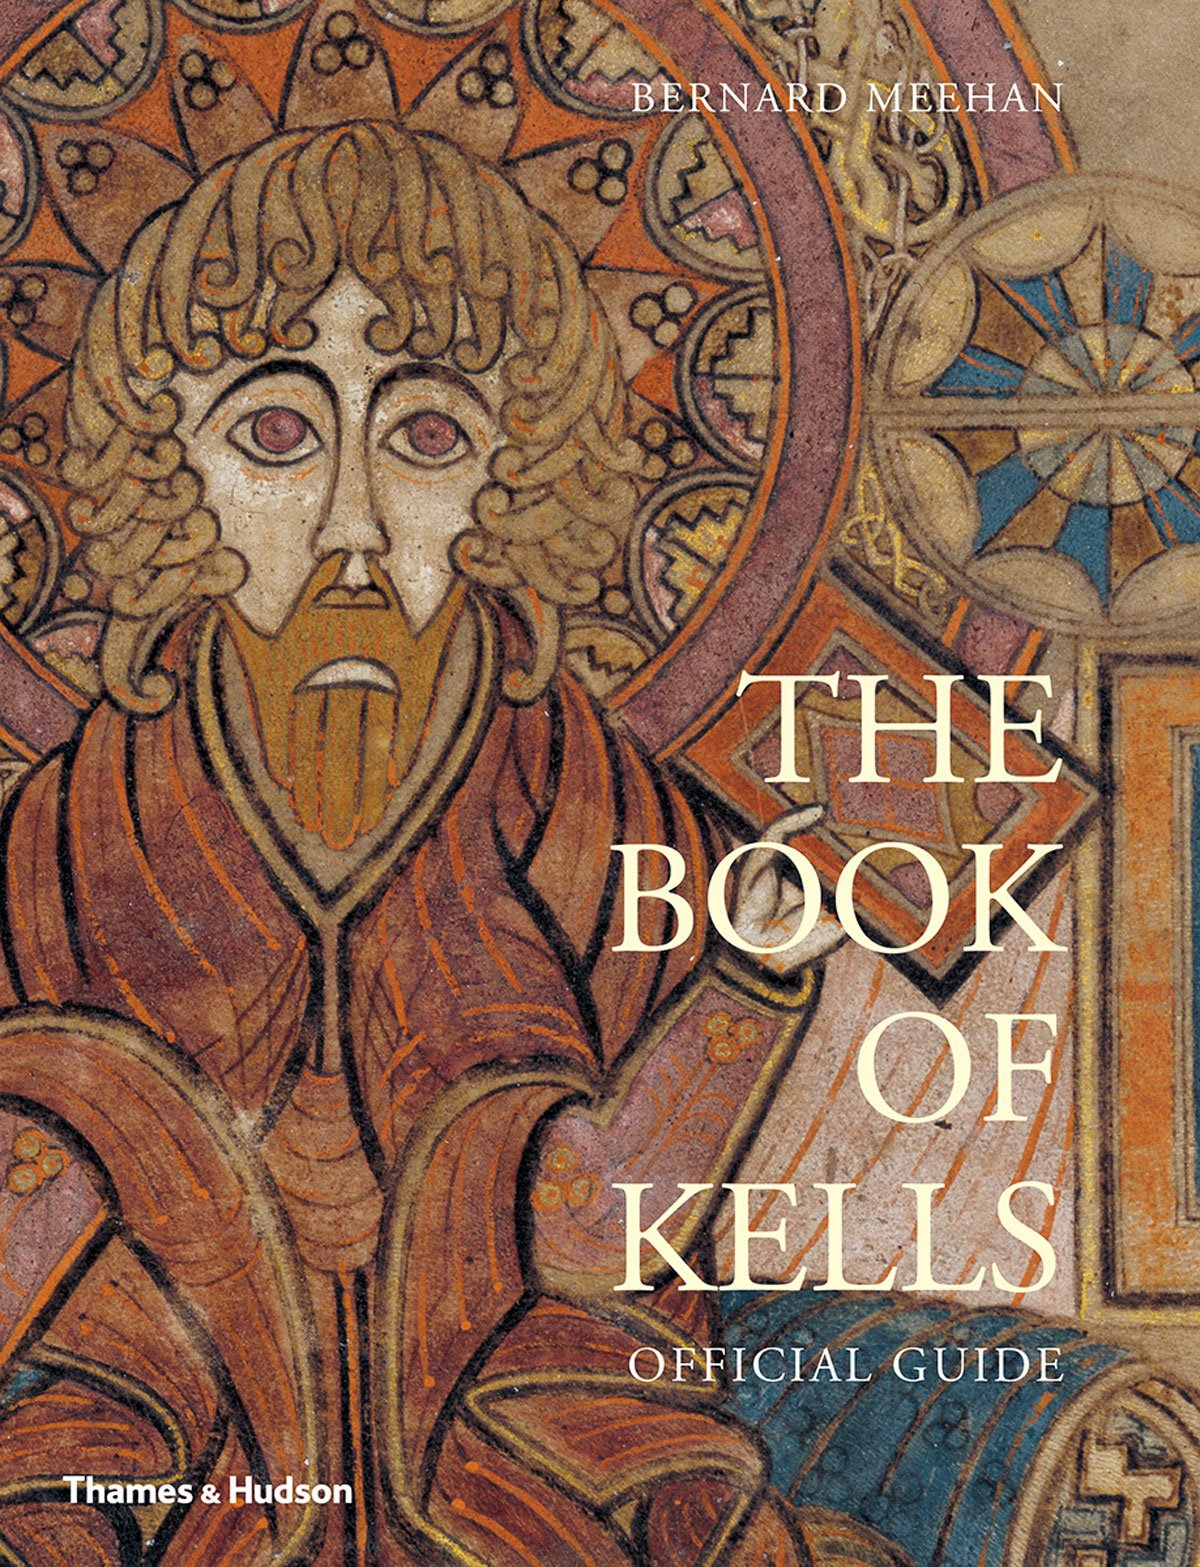 4f40ed50efbed The Book of Kells: Official Guide: Amazon.co.uk: Bernard Meehan ...